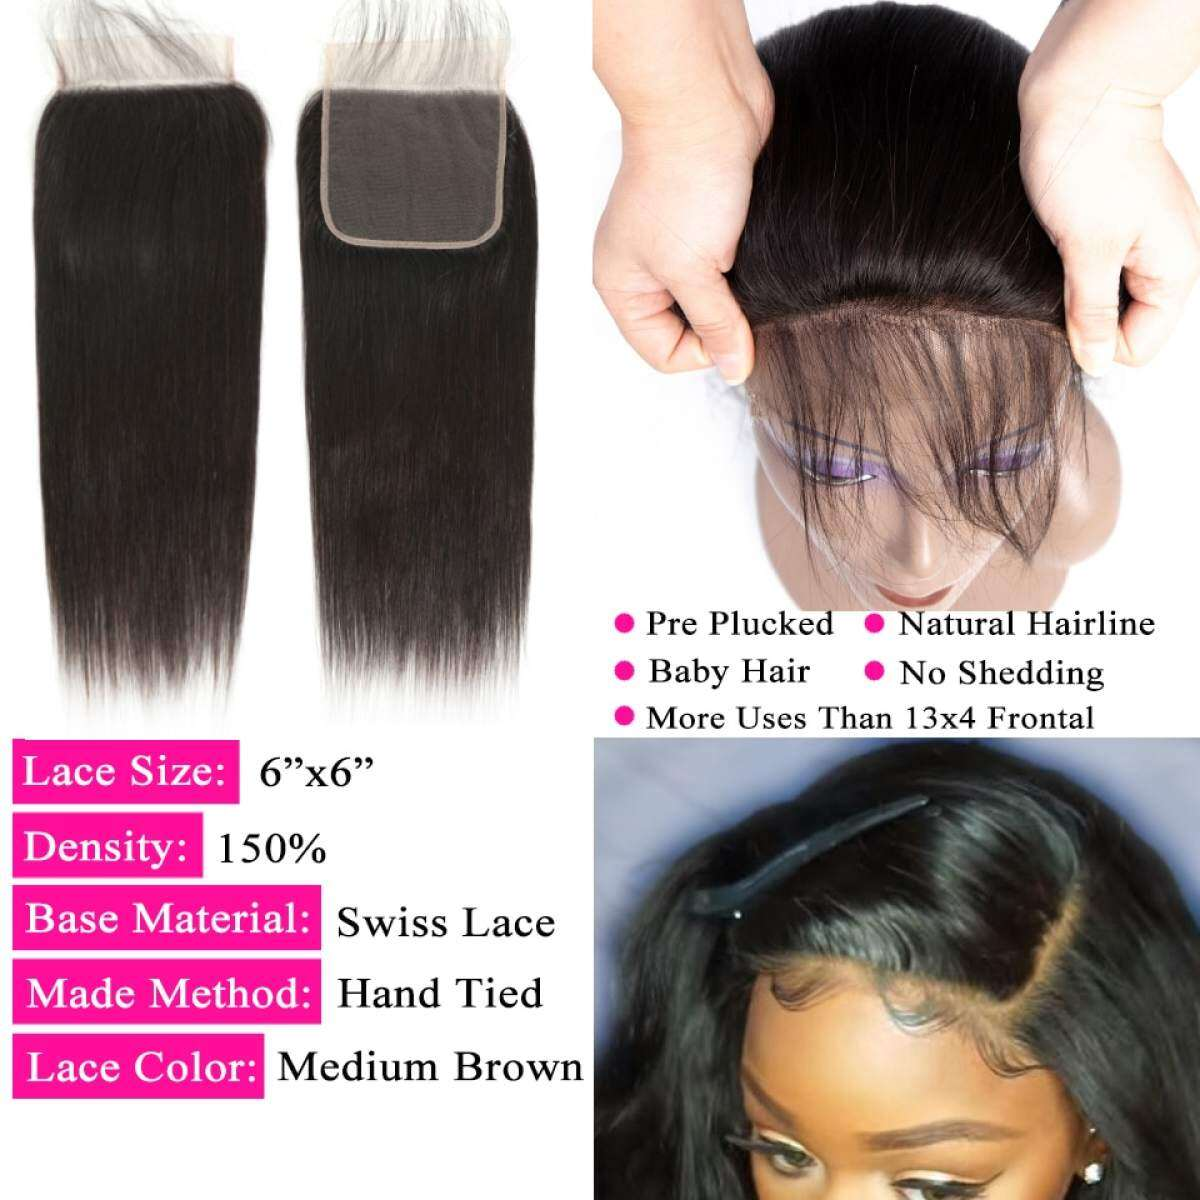 6 6 Lace Closure And Human Hair Bundles With 6x6 Closure Brazilian Hair Weave Bundles Straight 3 Bundles With Closure Lazada